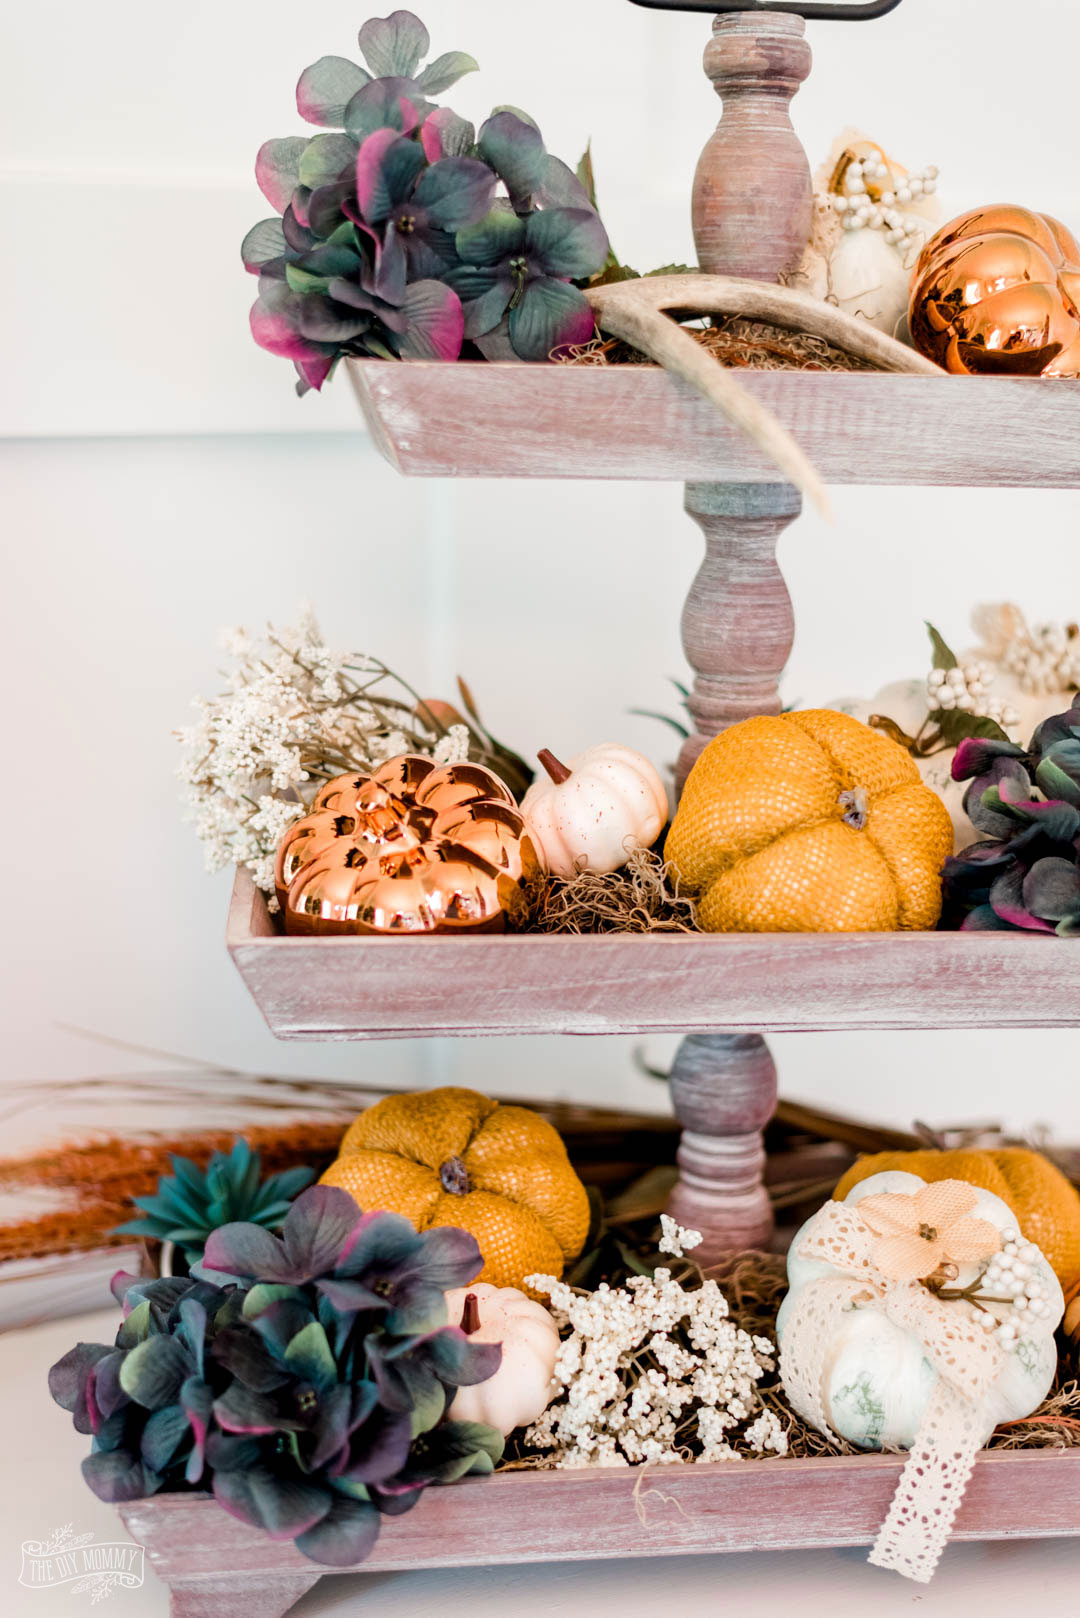 Learn how to make adorable boho chick pumpkins from dollar store pumpkins with chalk paint, a sanding sponge, hot glue, and faux florals.